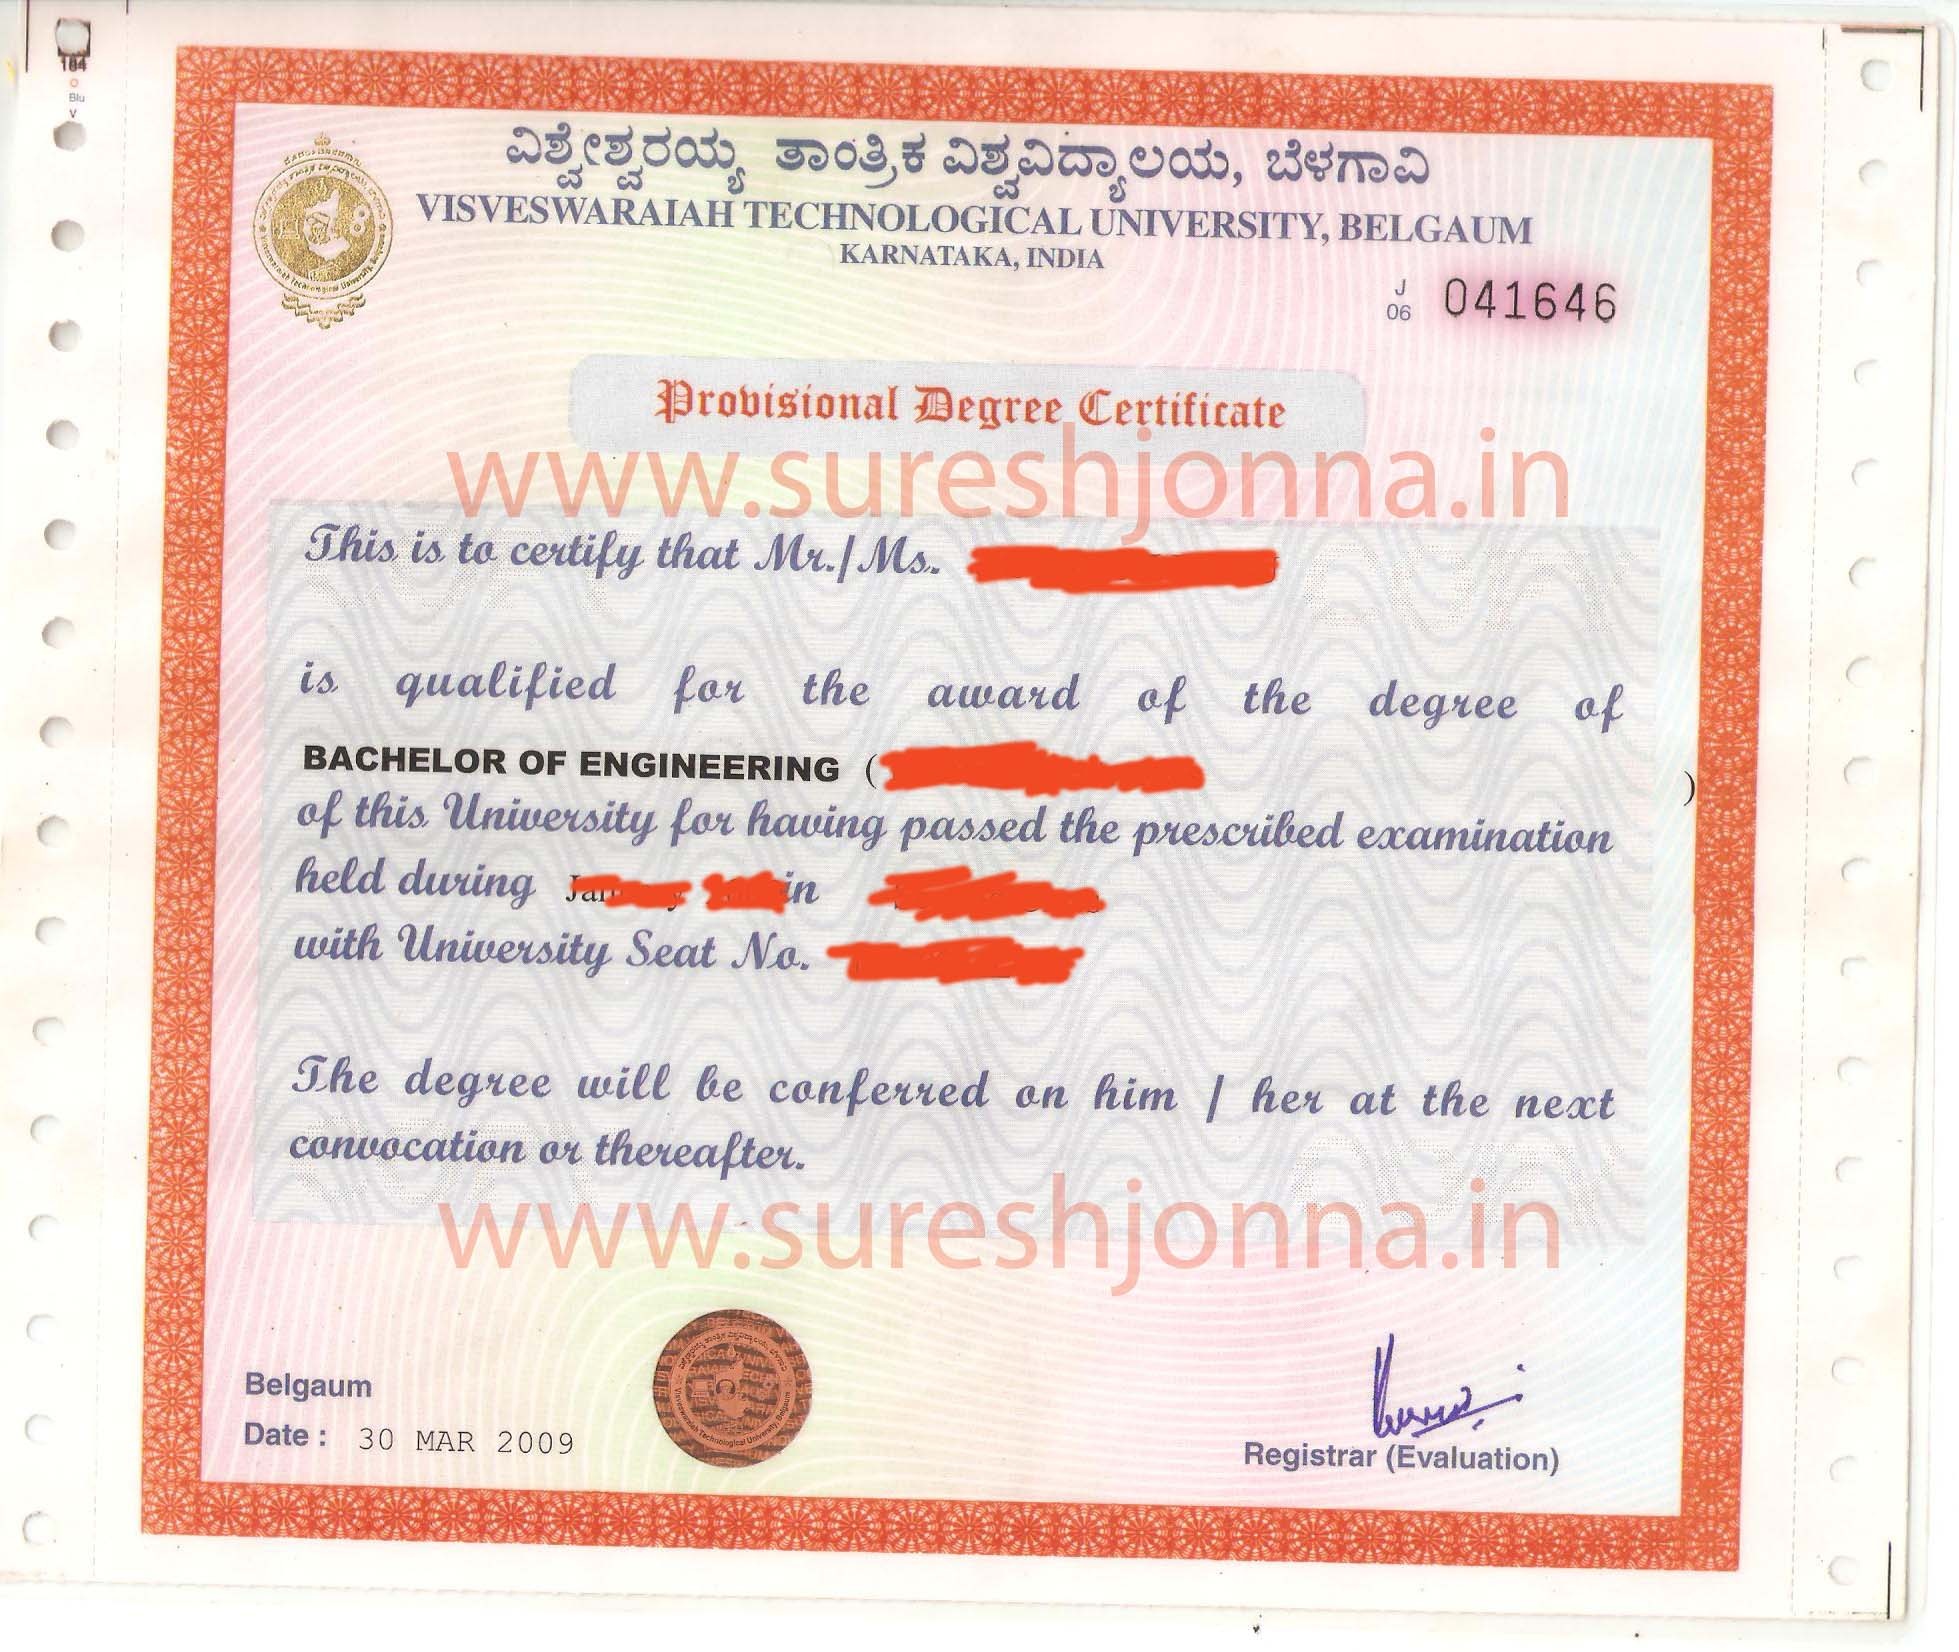 sample-provisional-degree-certificate Provisional Degree Certificate Application Form Vtu on guyana birth,